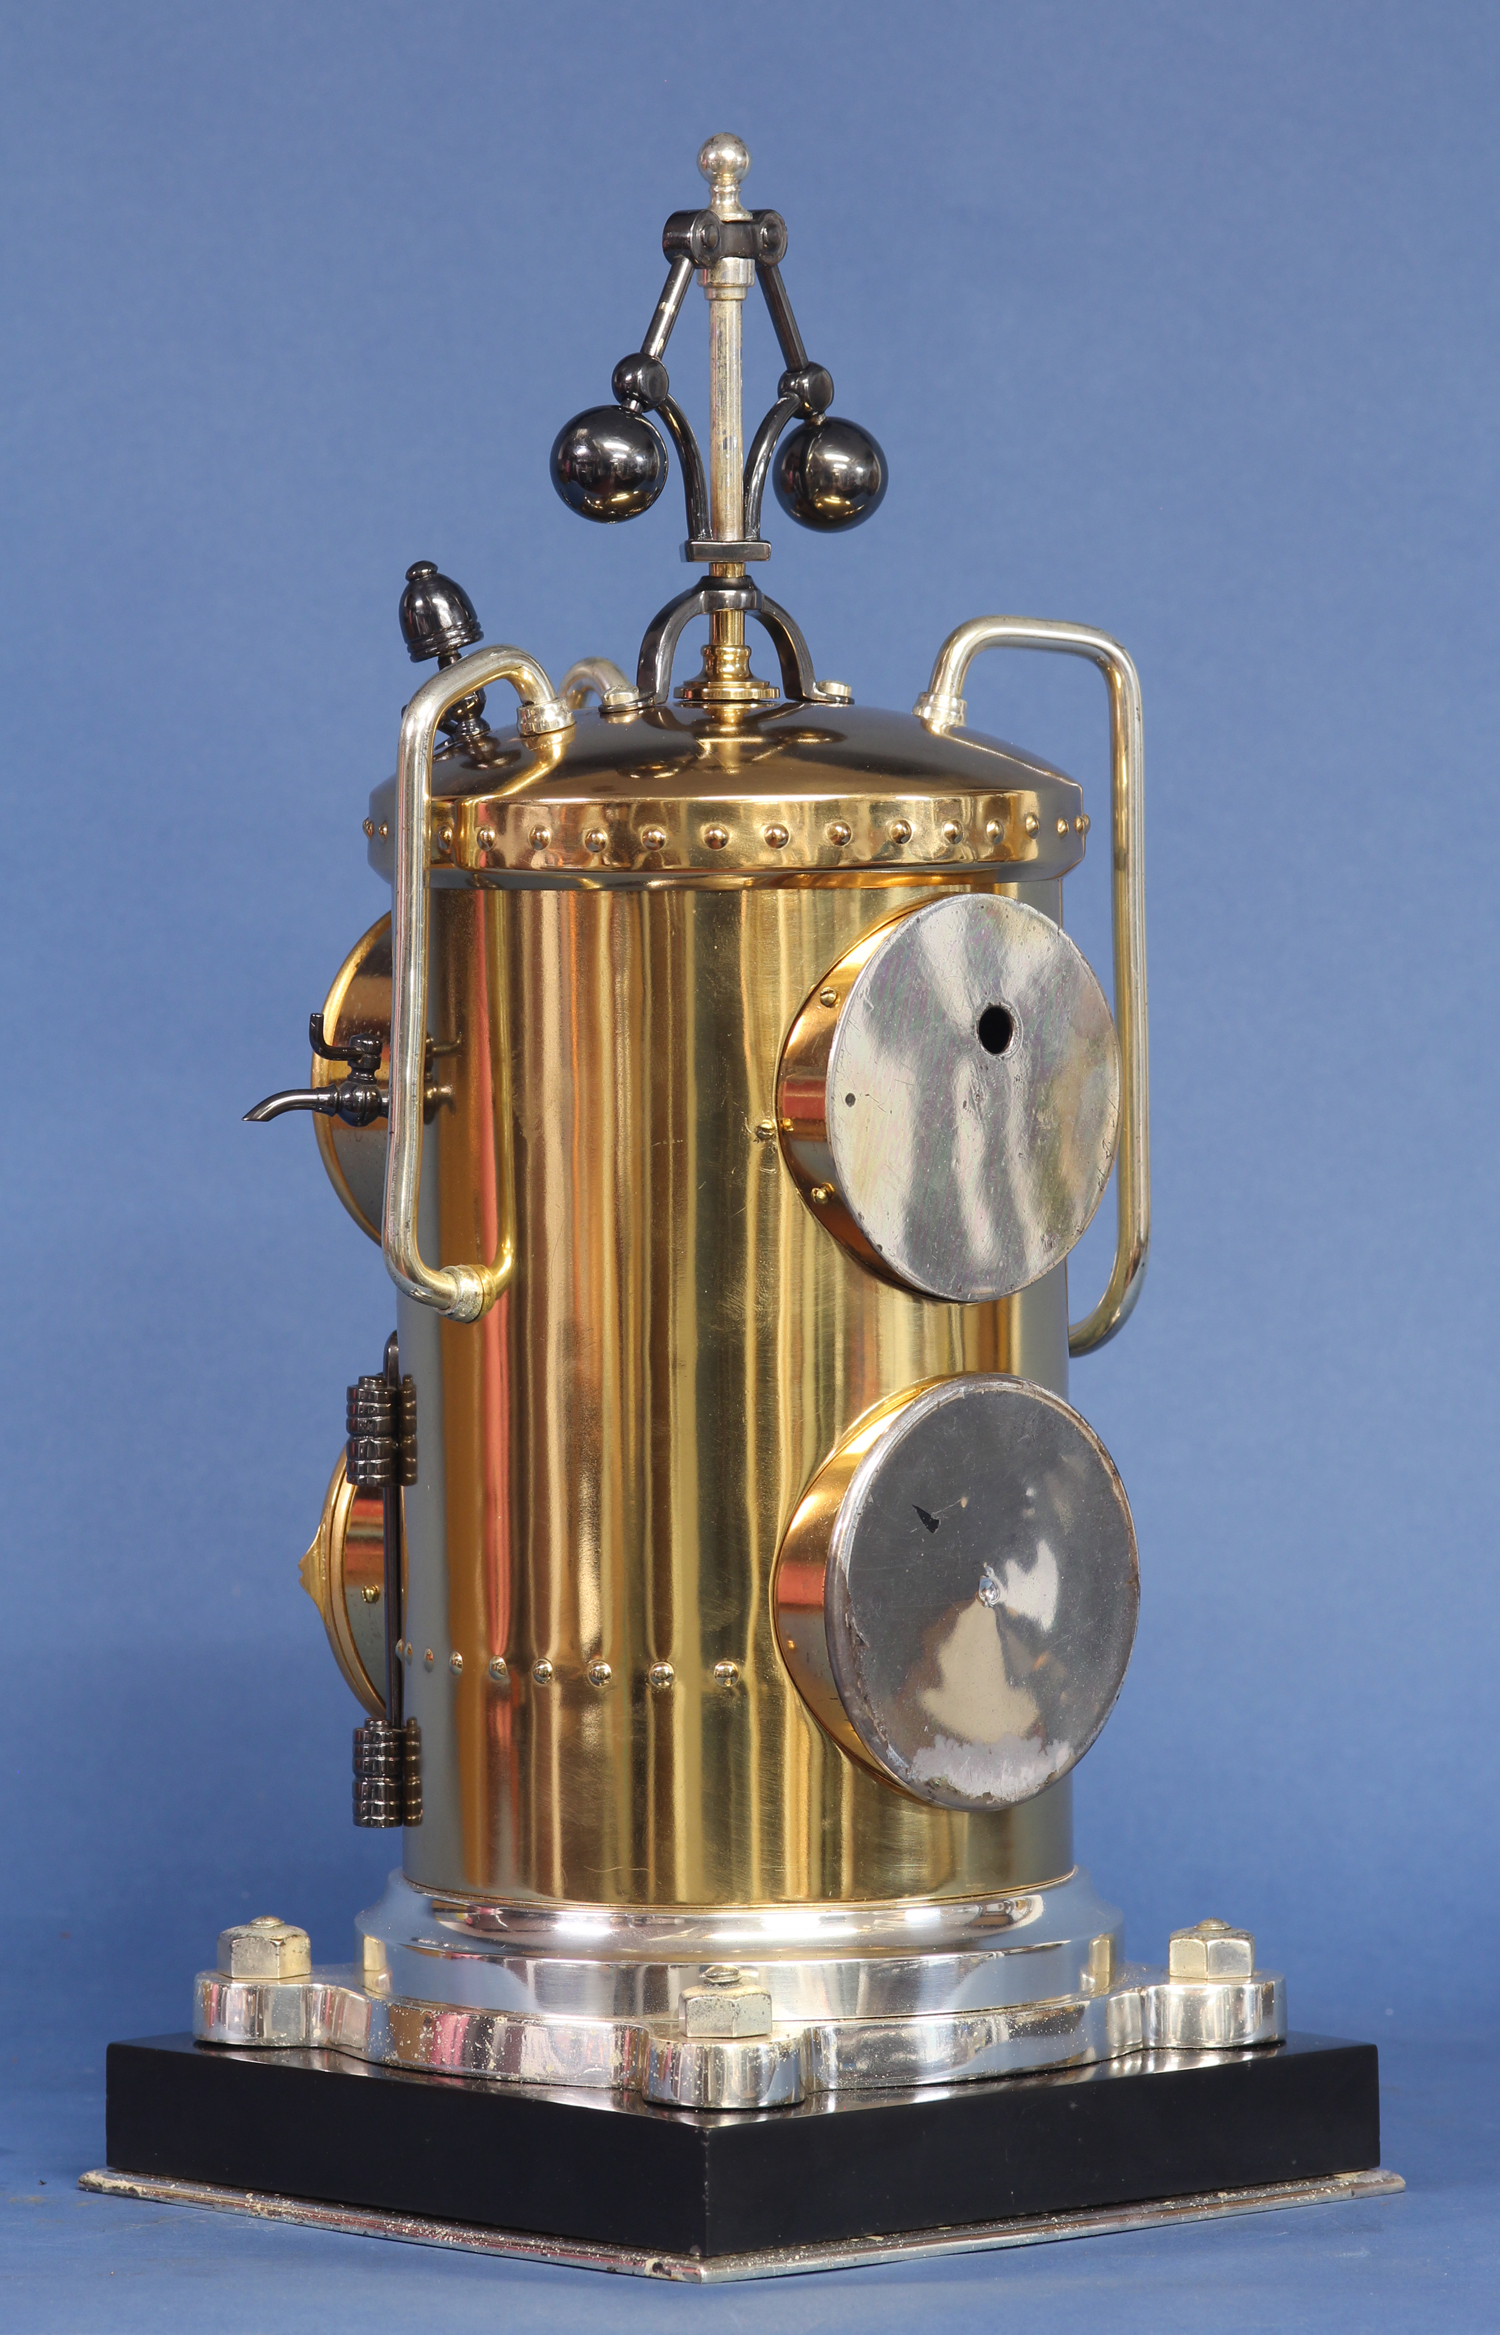 French Vertical Boiler Industrial Clock